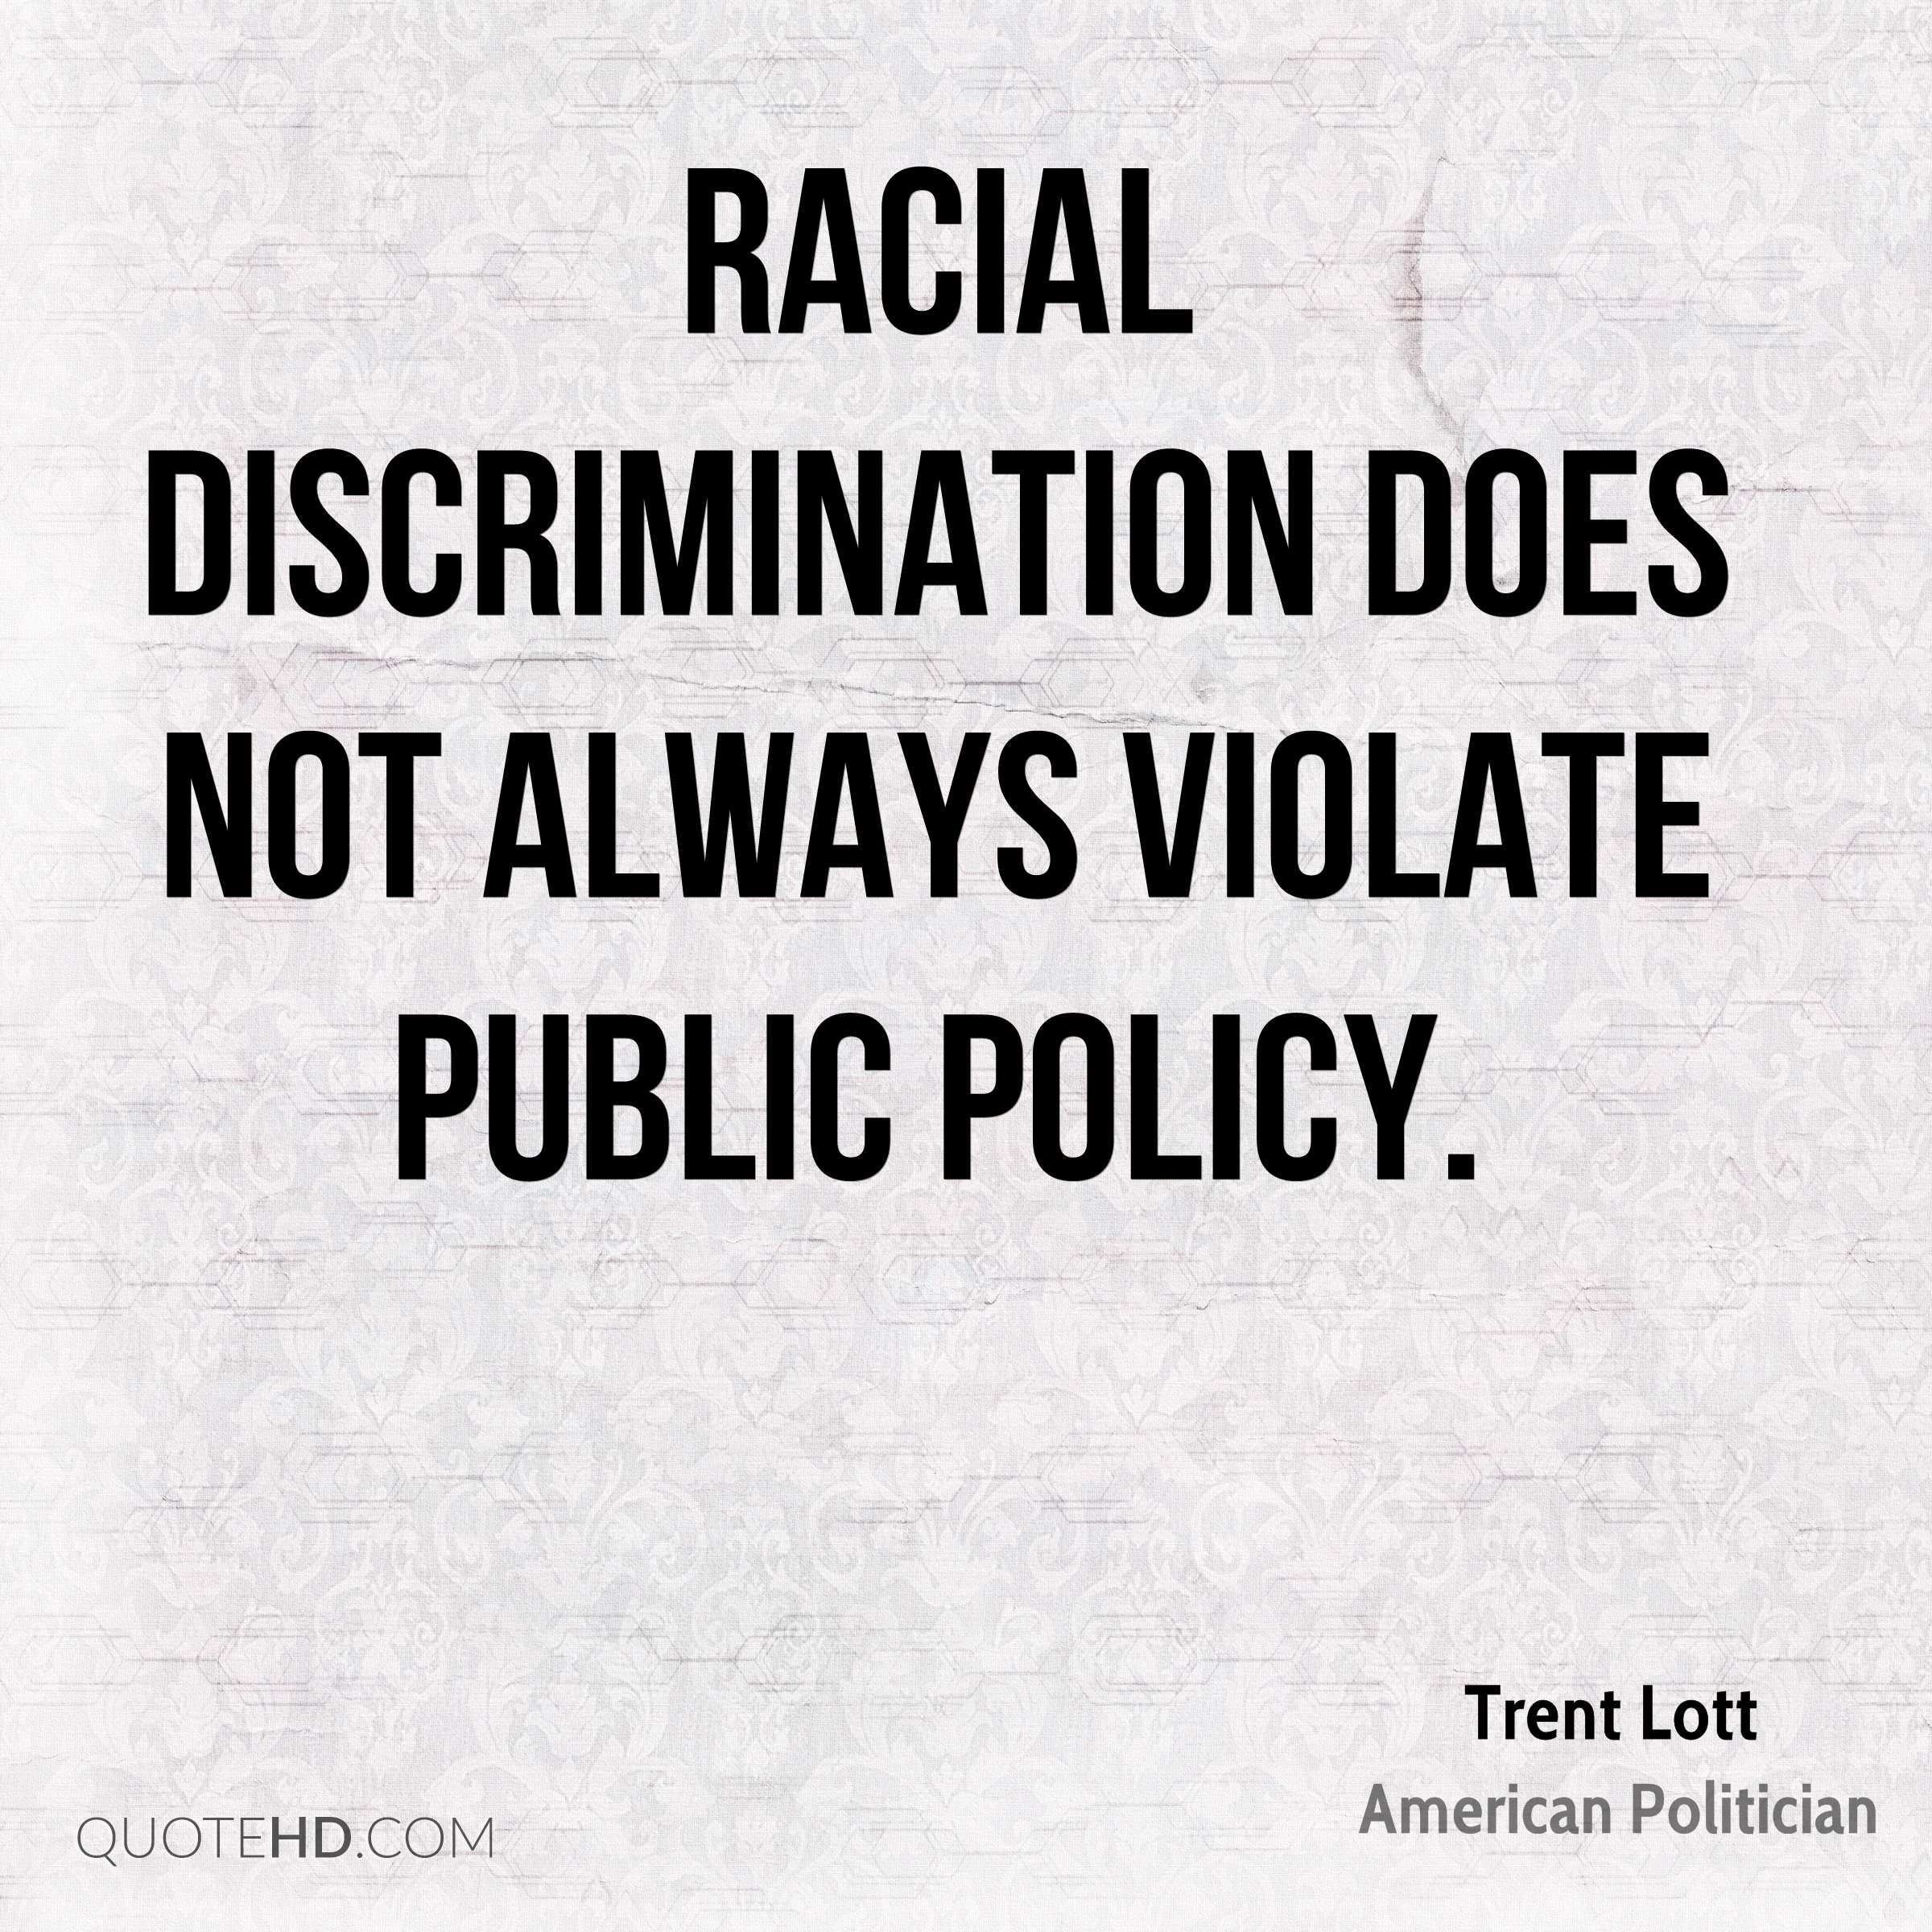 Racial discrimination does not always violate public policy.